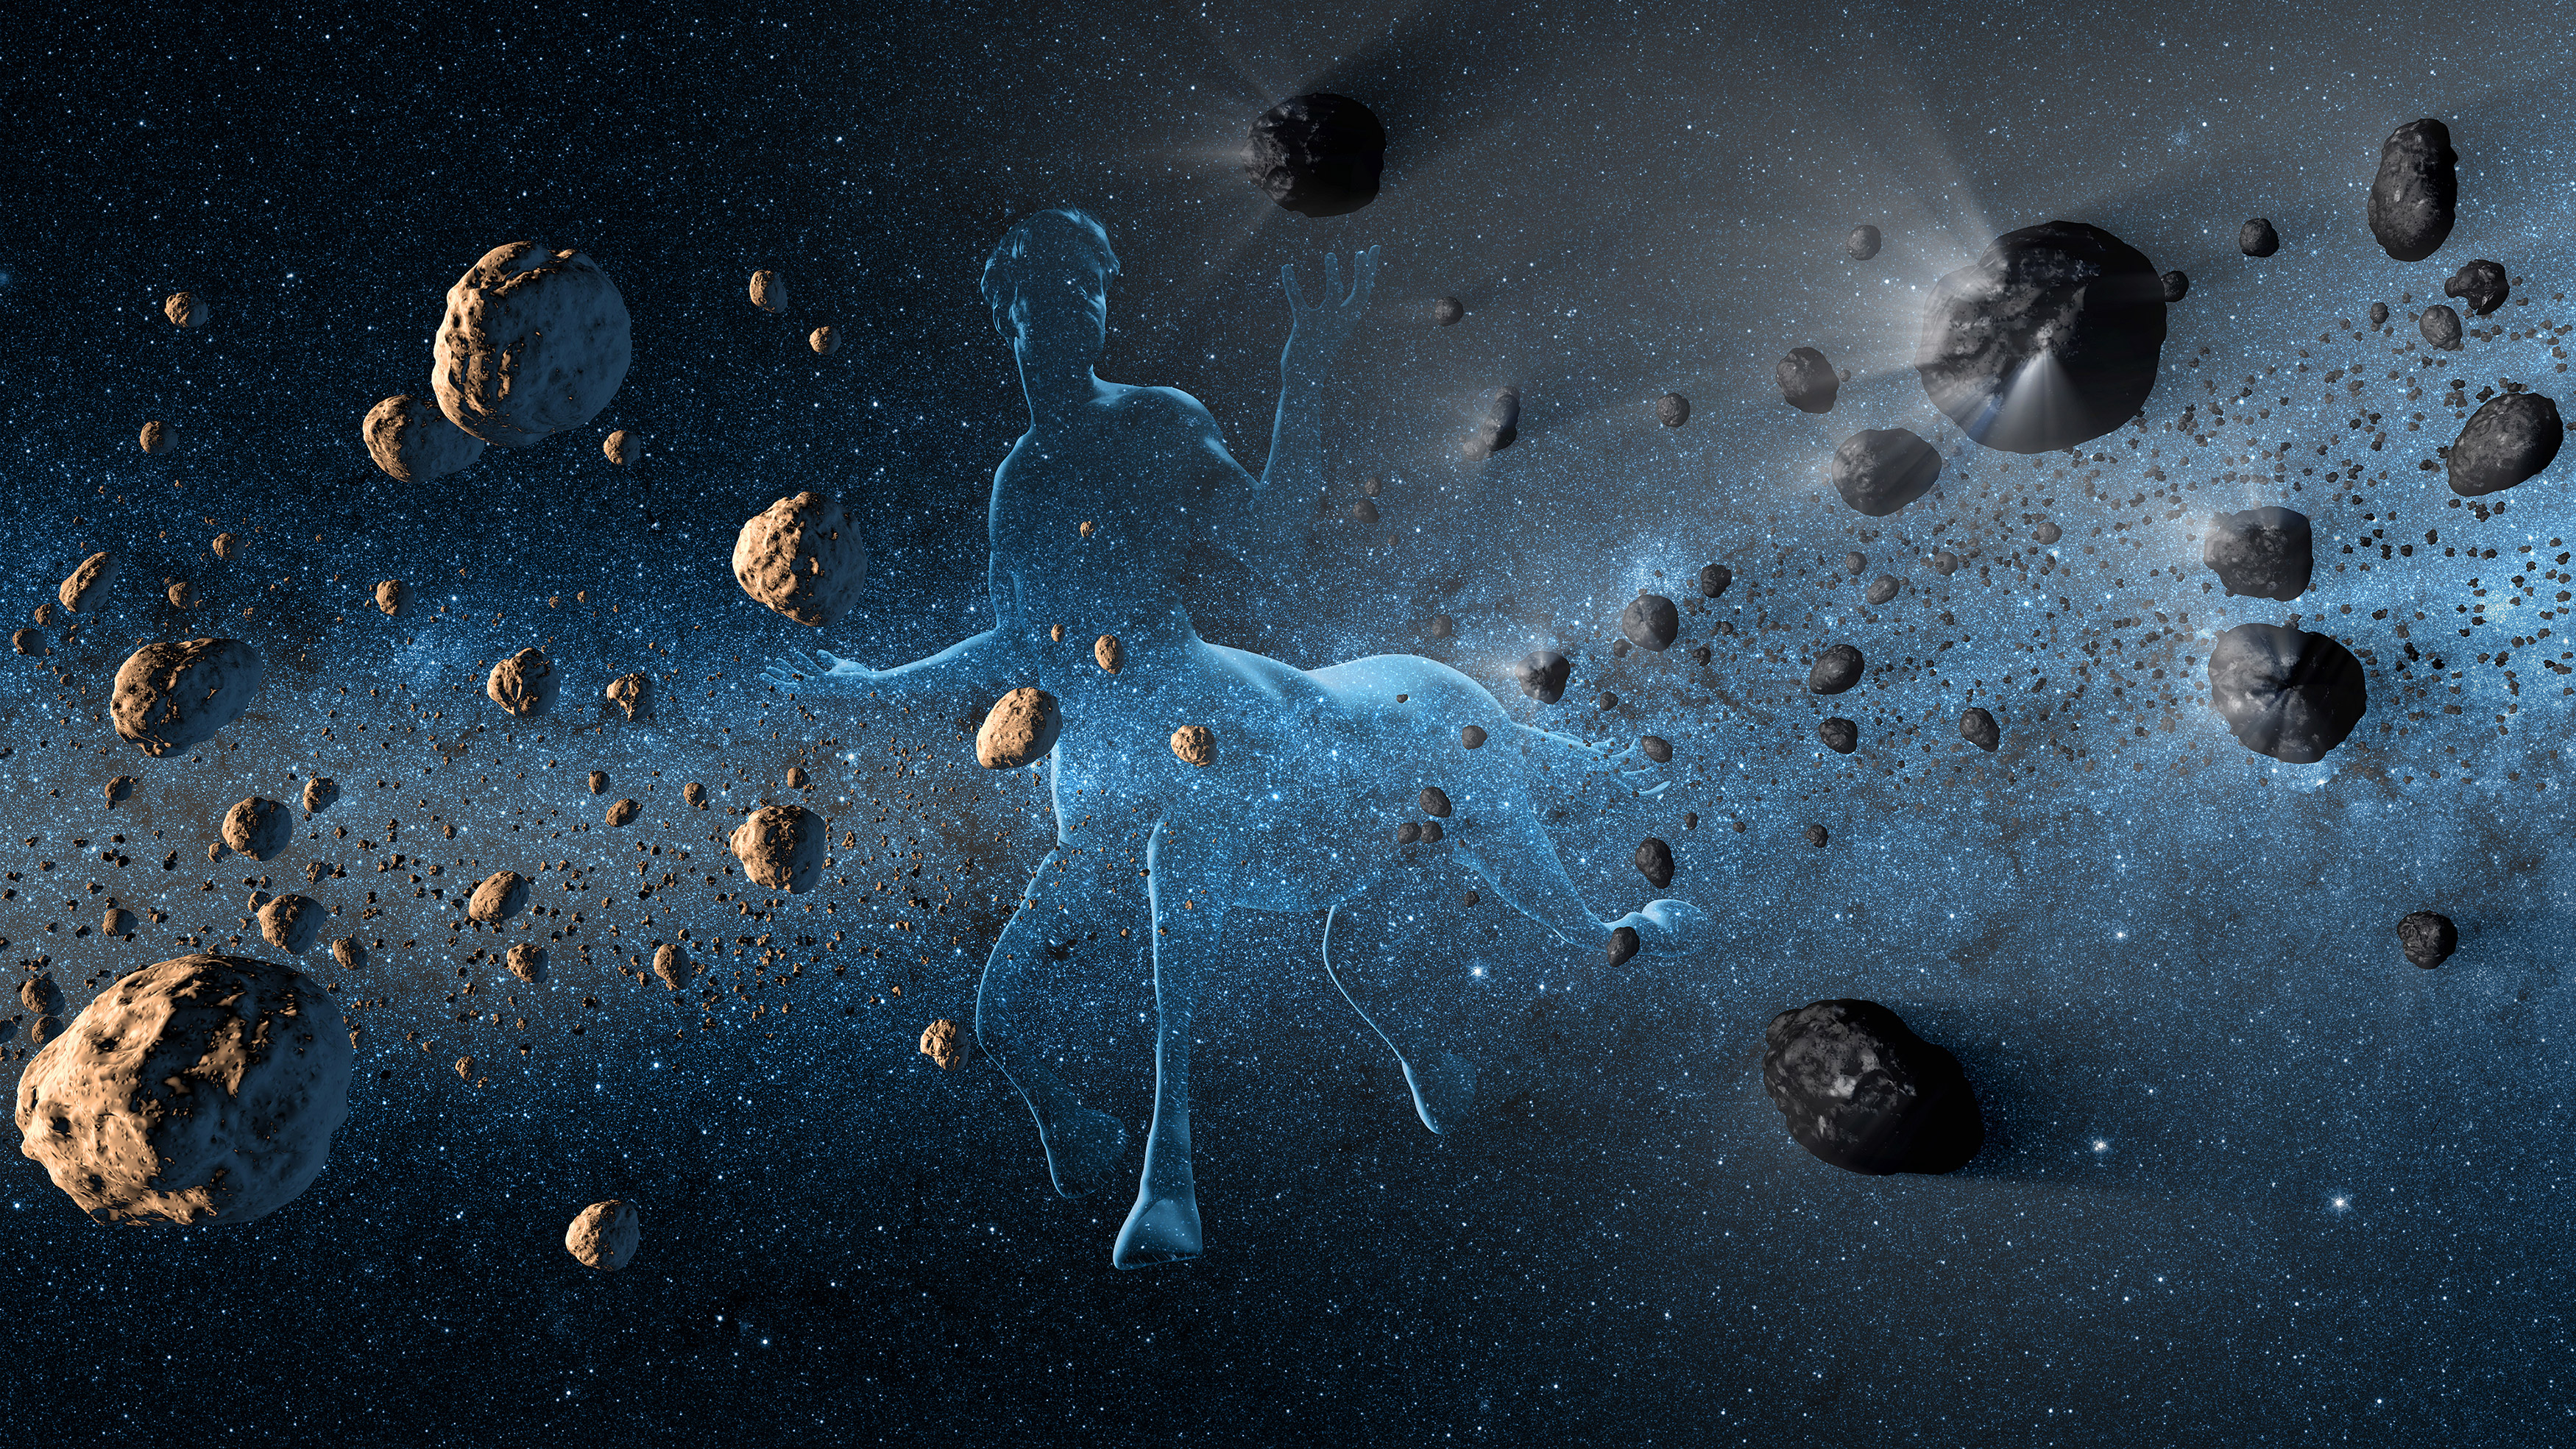 neowise20130725-full